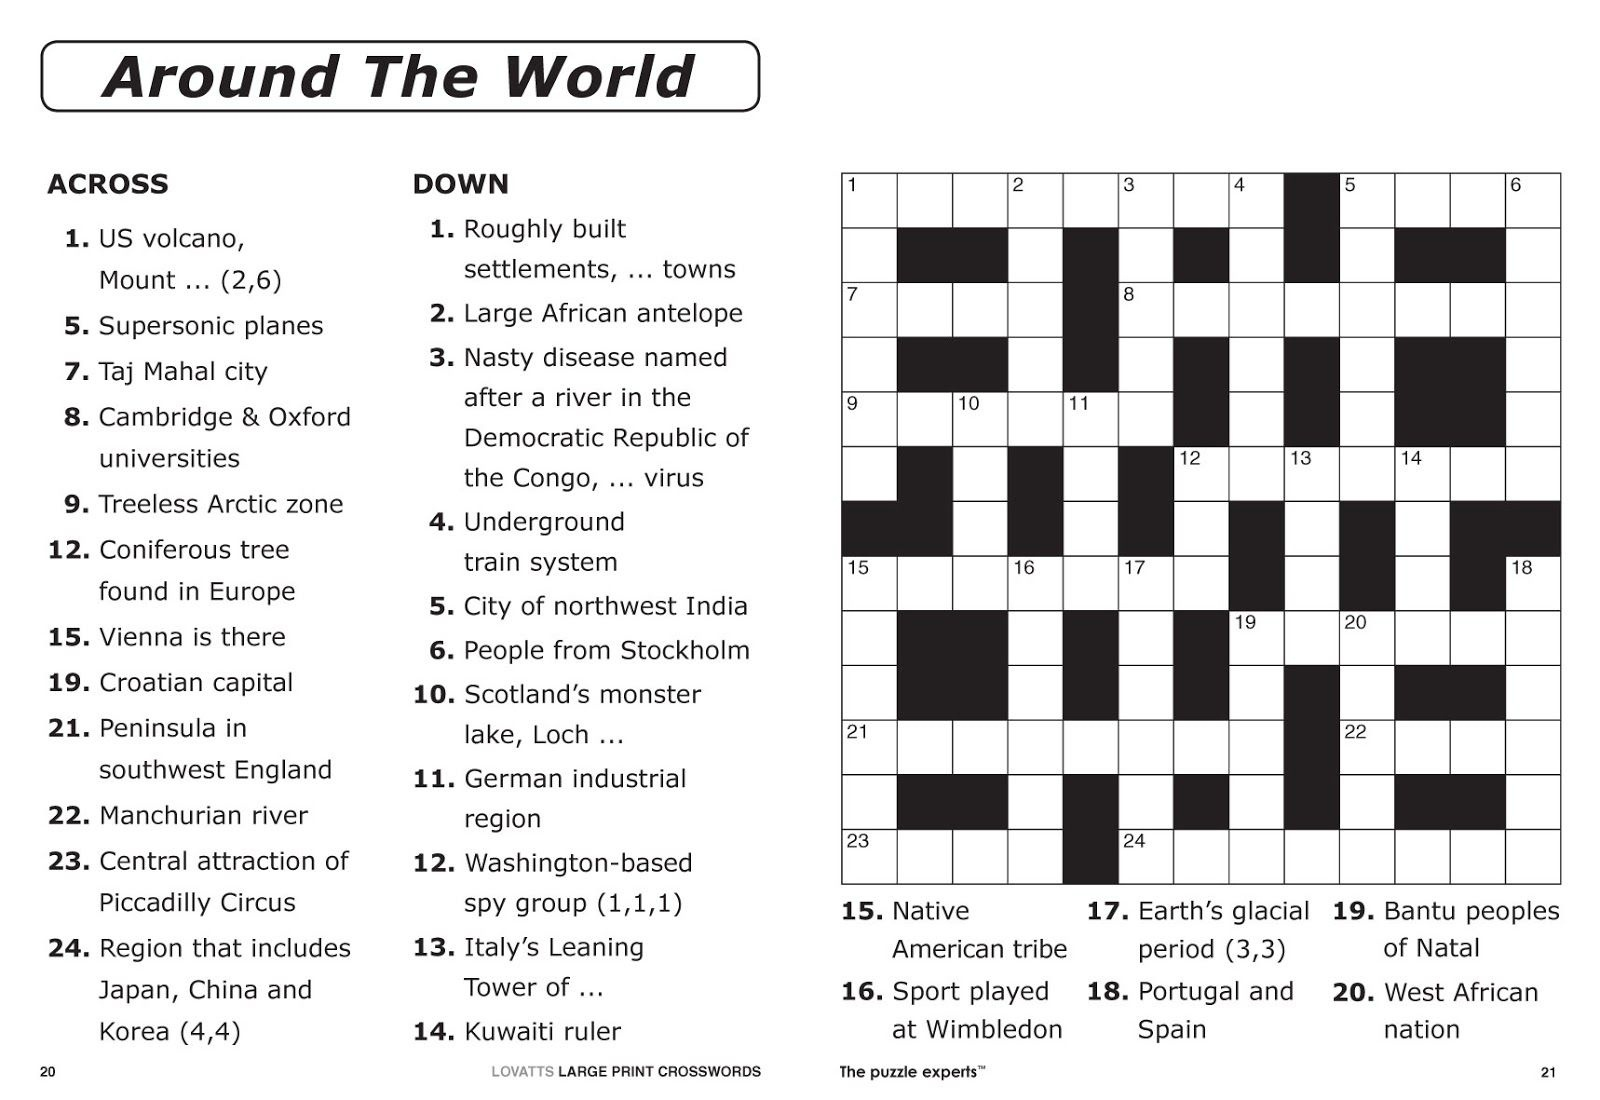 Free Printable Large Print Crossword Puzzles | M3U8 - Free Easy Printable Crossword Puzzles For Adults